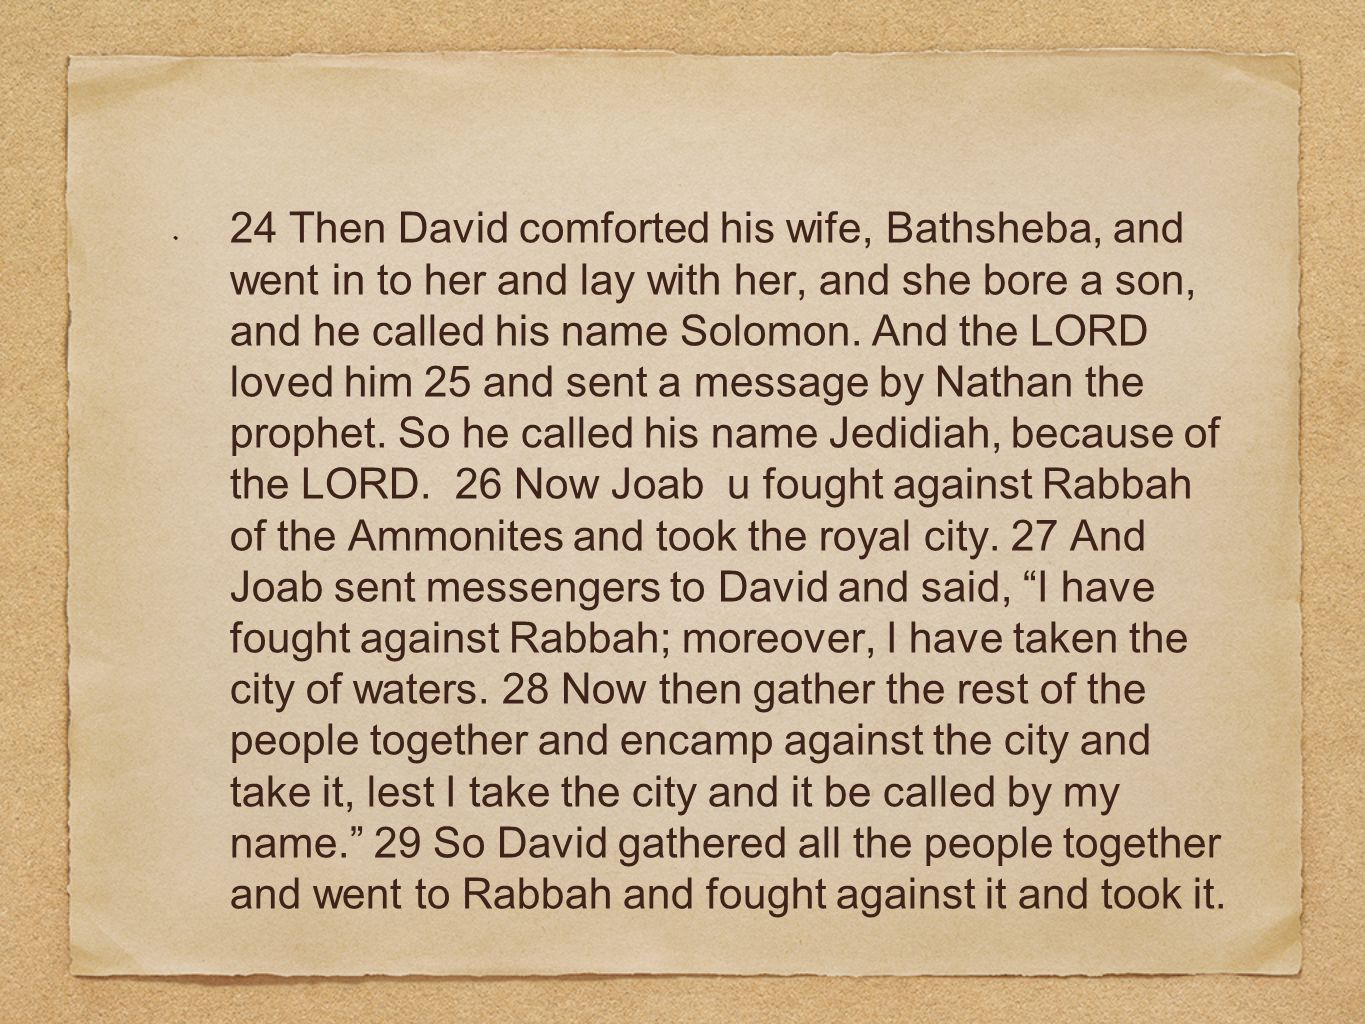 24 Then David comforted his wife, Bathsheba, and went in to her and lay with her, and she bore a son, and he called his name Solomon.